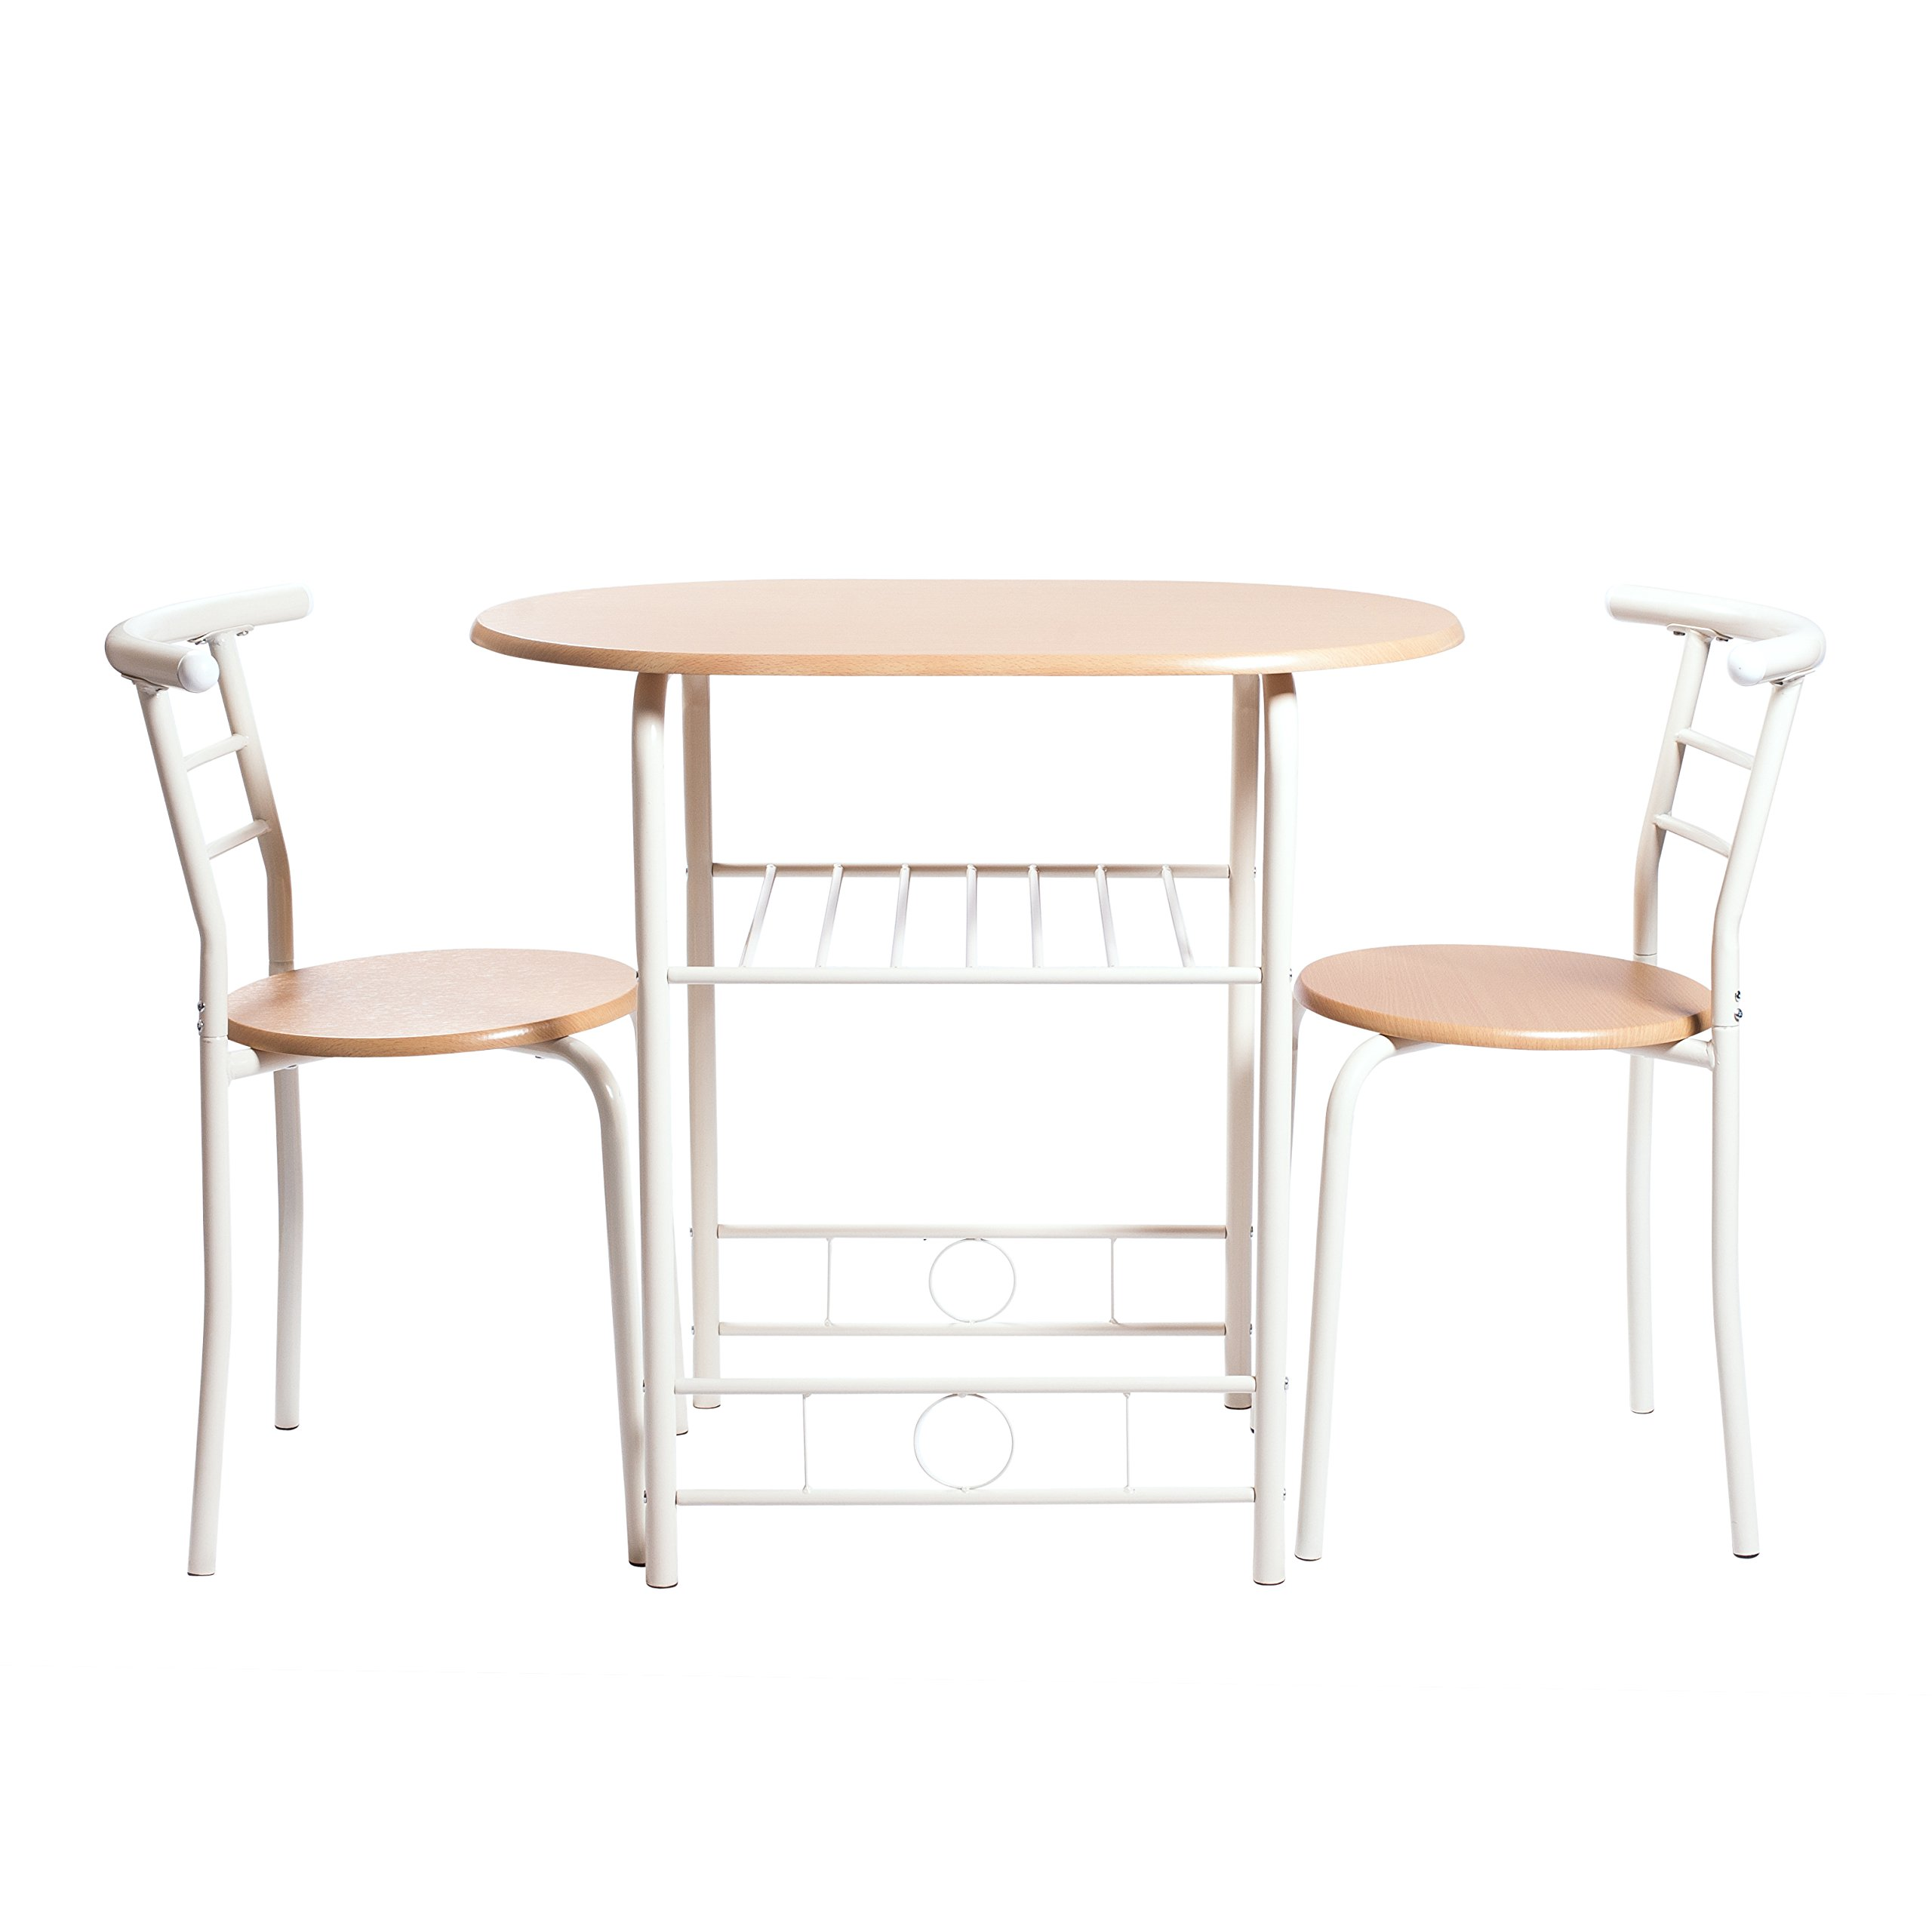 Handi-Craft 3 Piece Compact Dining Set w/Table and Matching Chairs by Handi-Craft